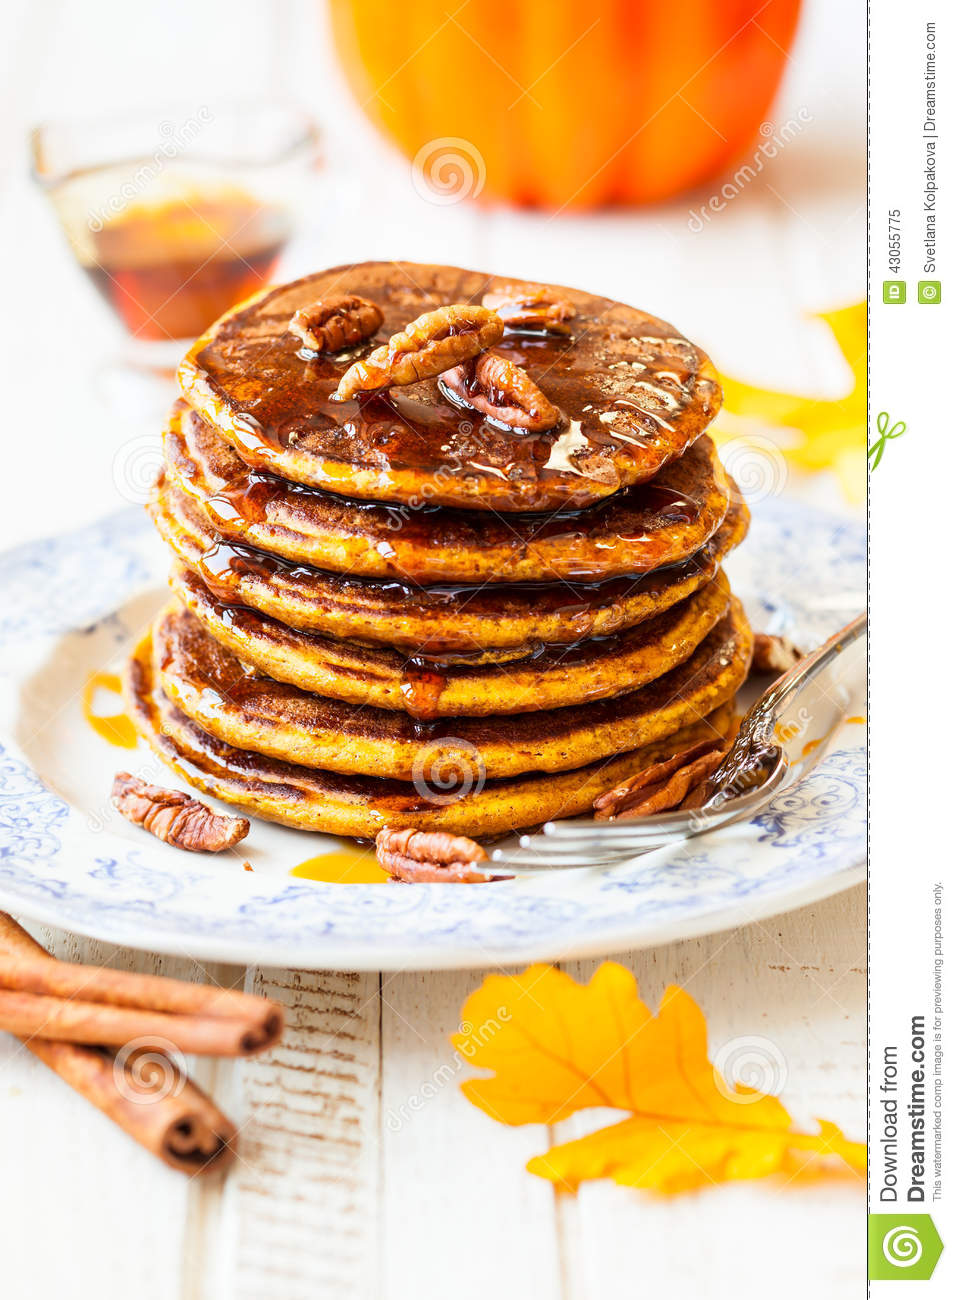 Pumpkin Pancakes Stock Photo - Image: 43055775